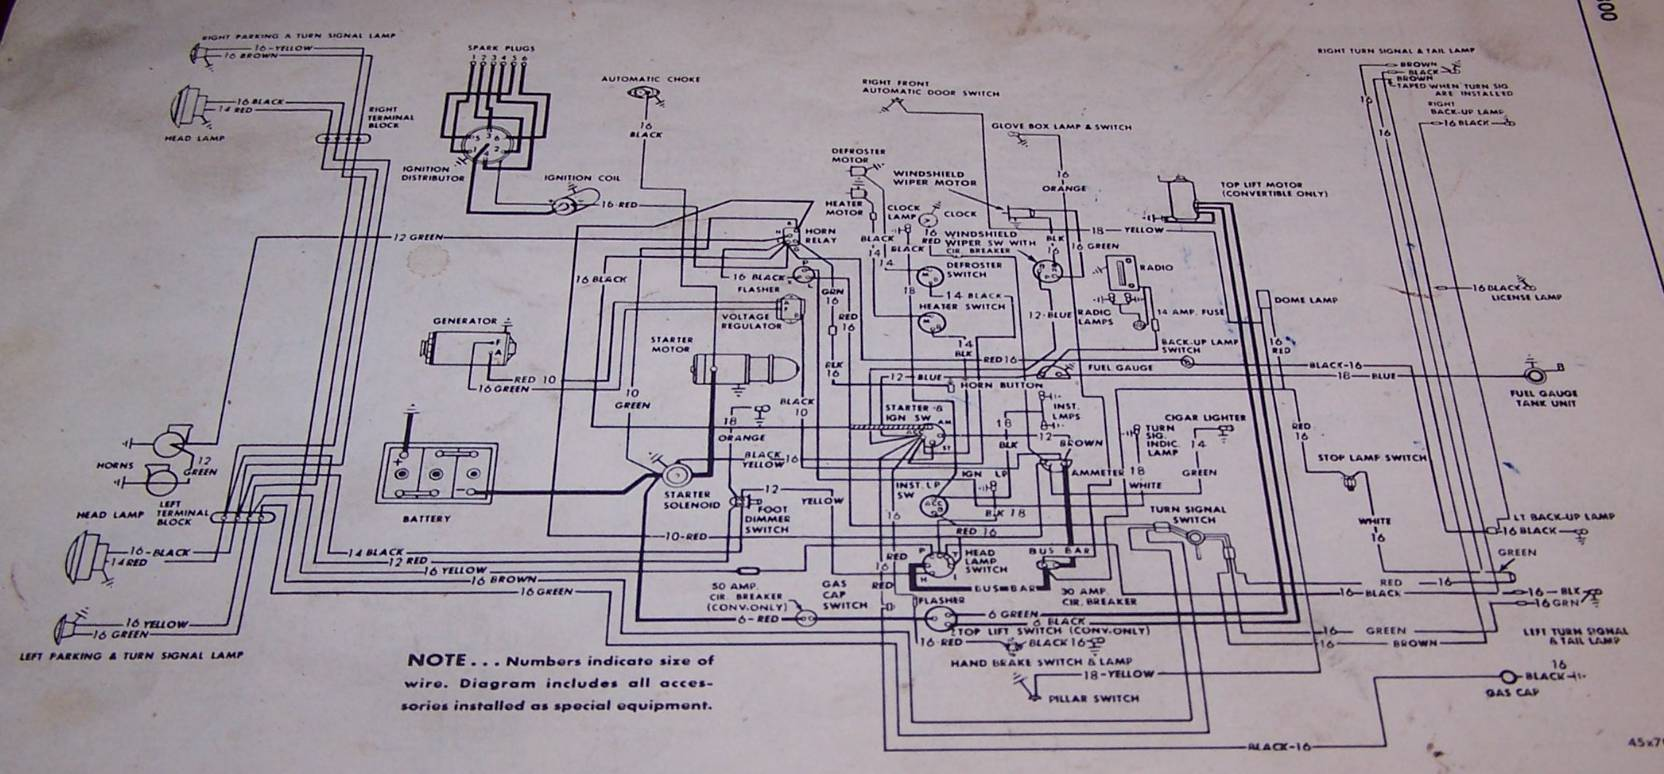 1949 Desoto Wiring Diagram Archive Of Automotive 1961 Dodge D100 Old Mopar Information Rh Oldmopar Com